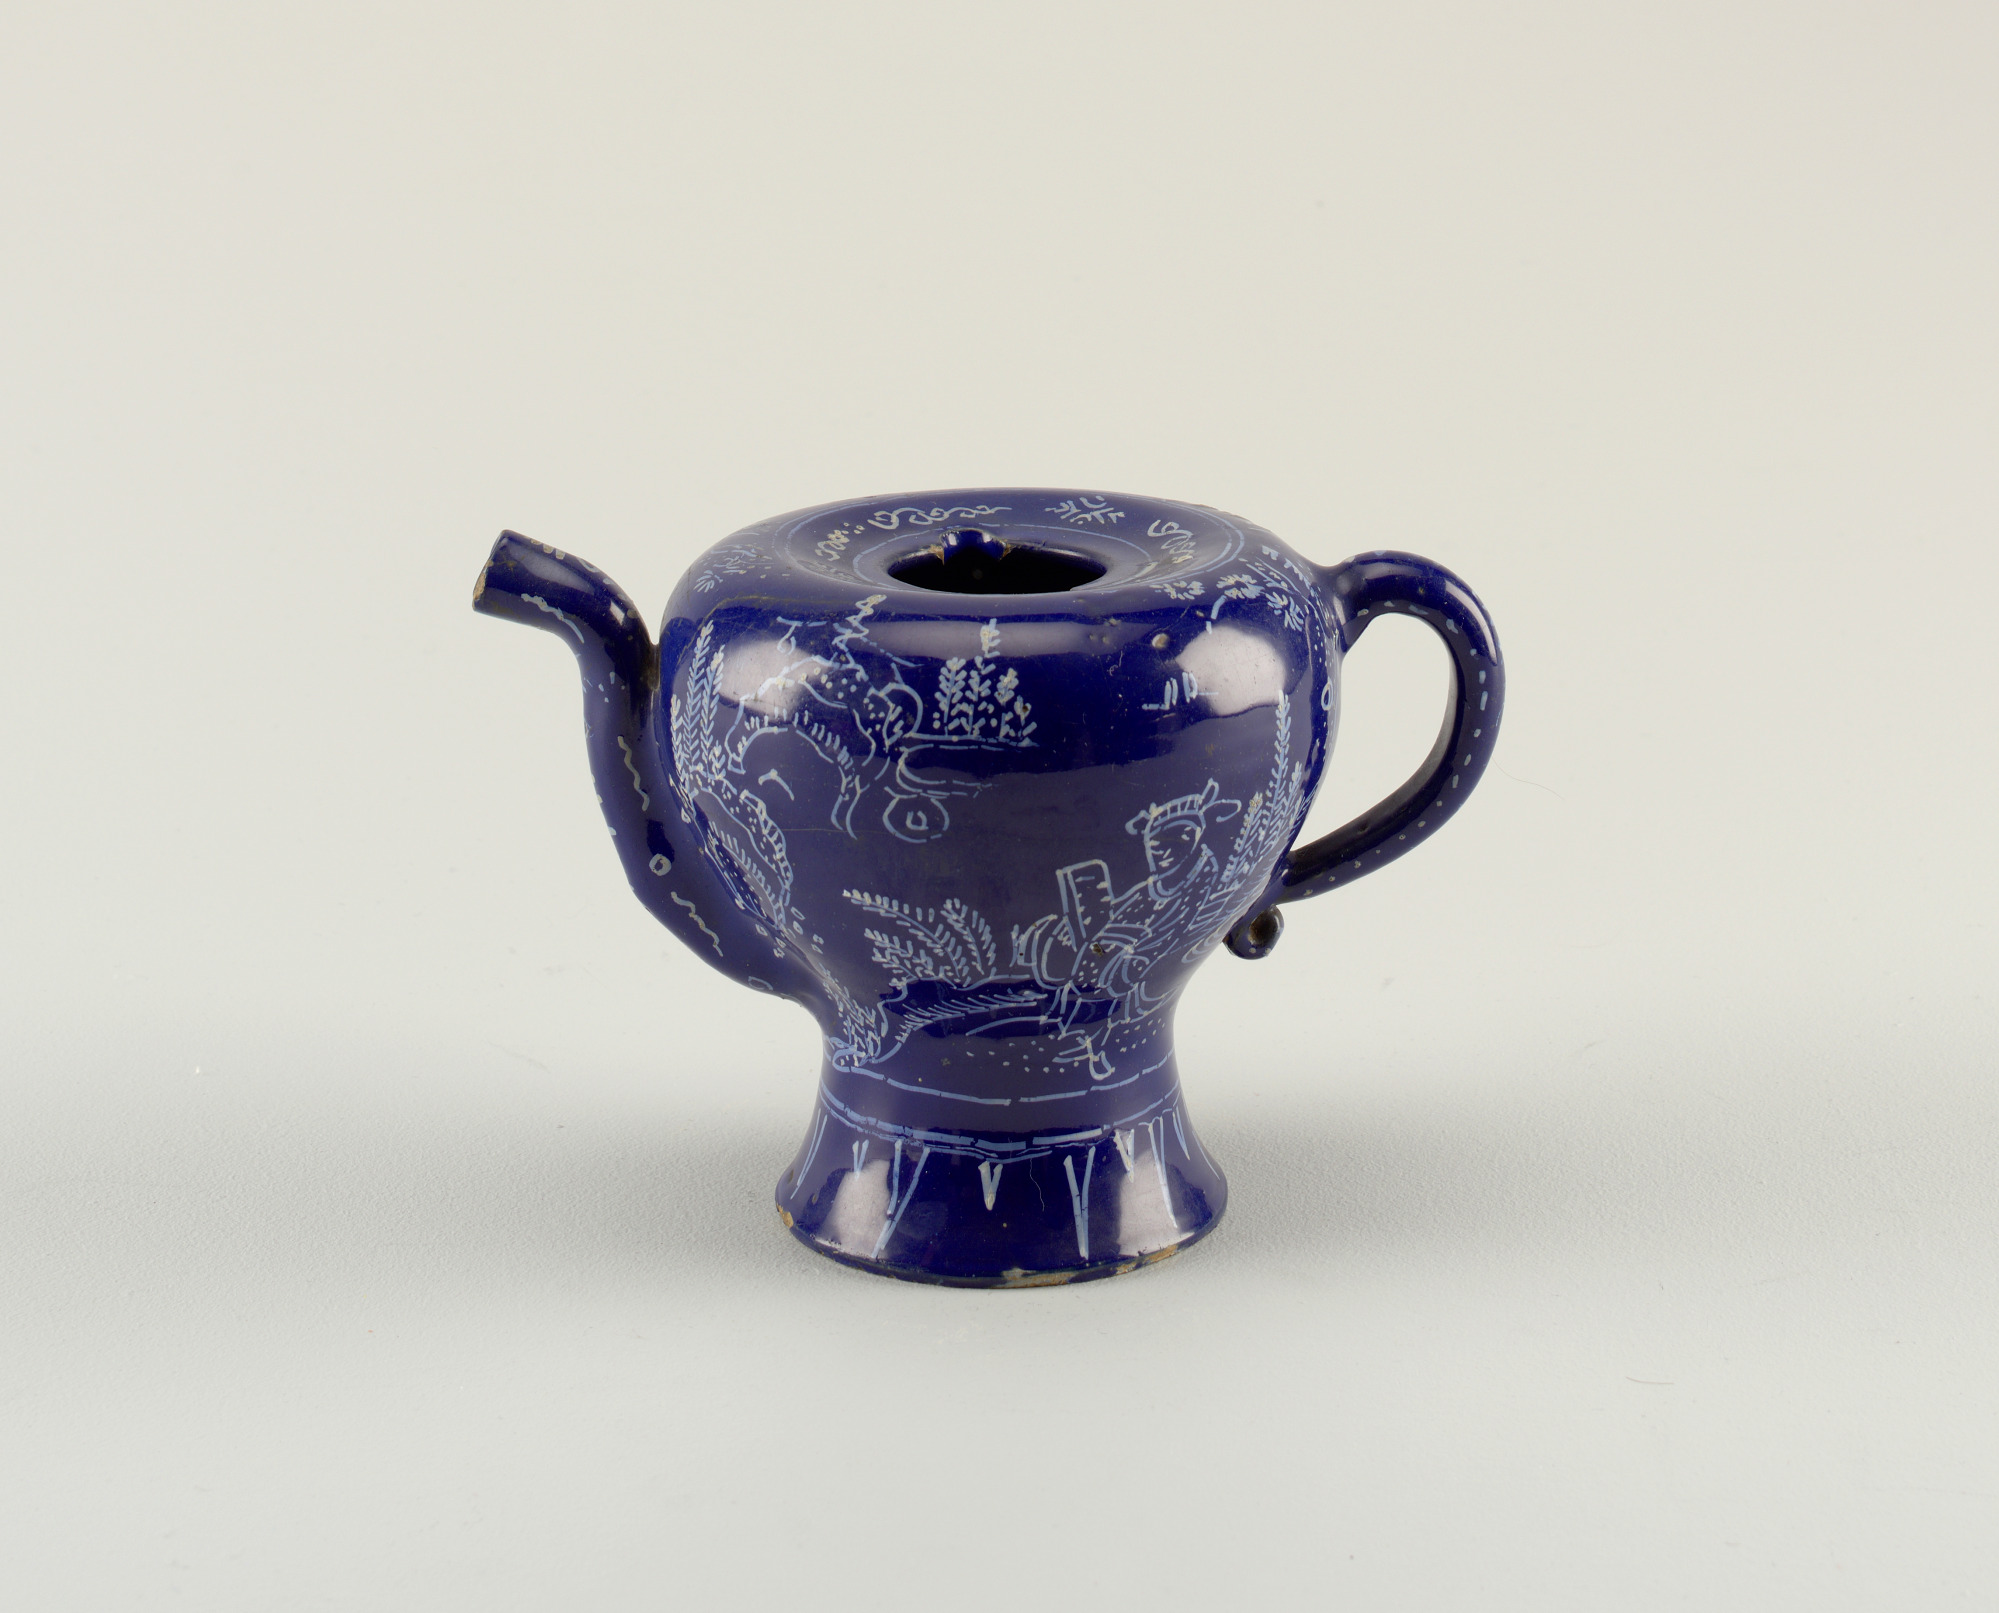 Coffeepot with Chinoiserie Figures in Landscape